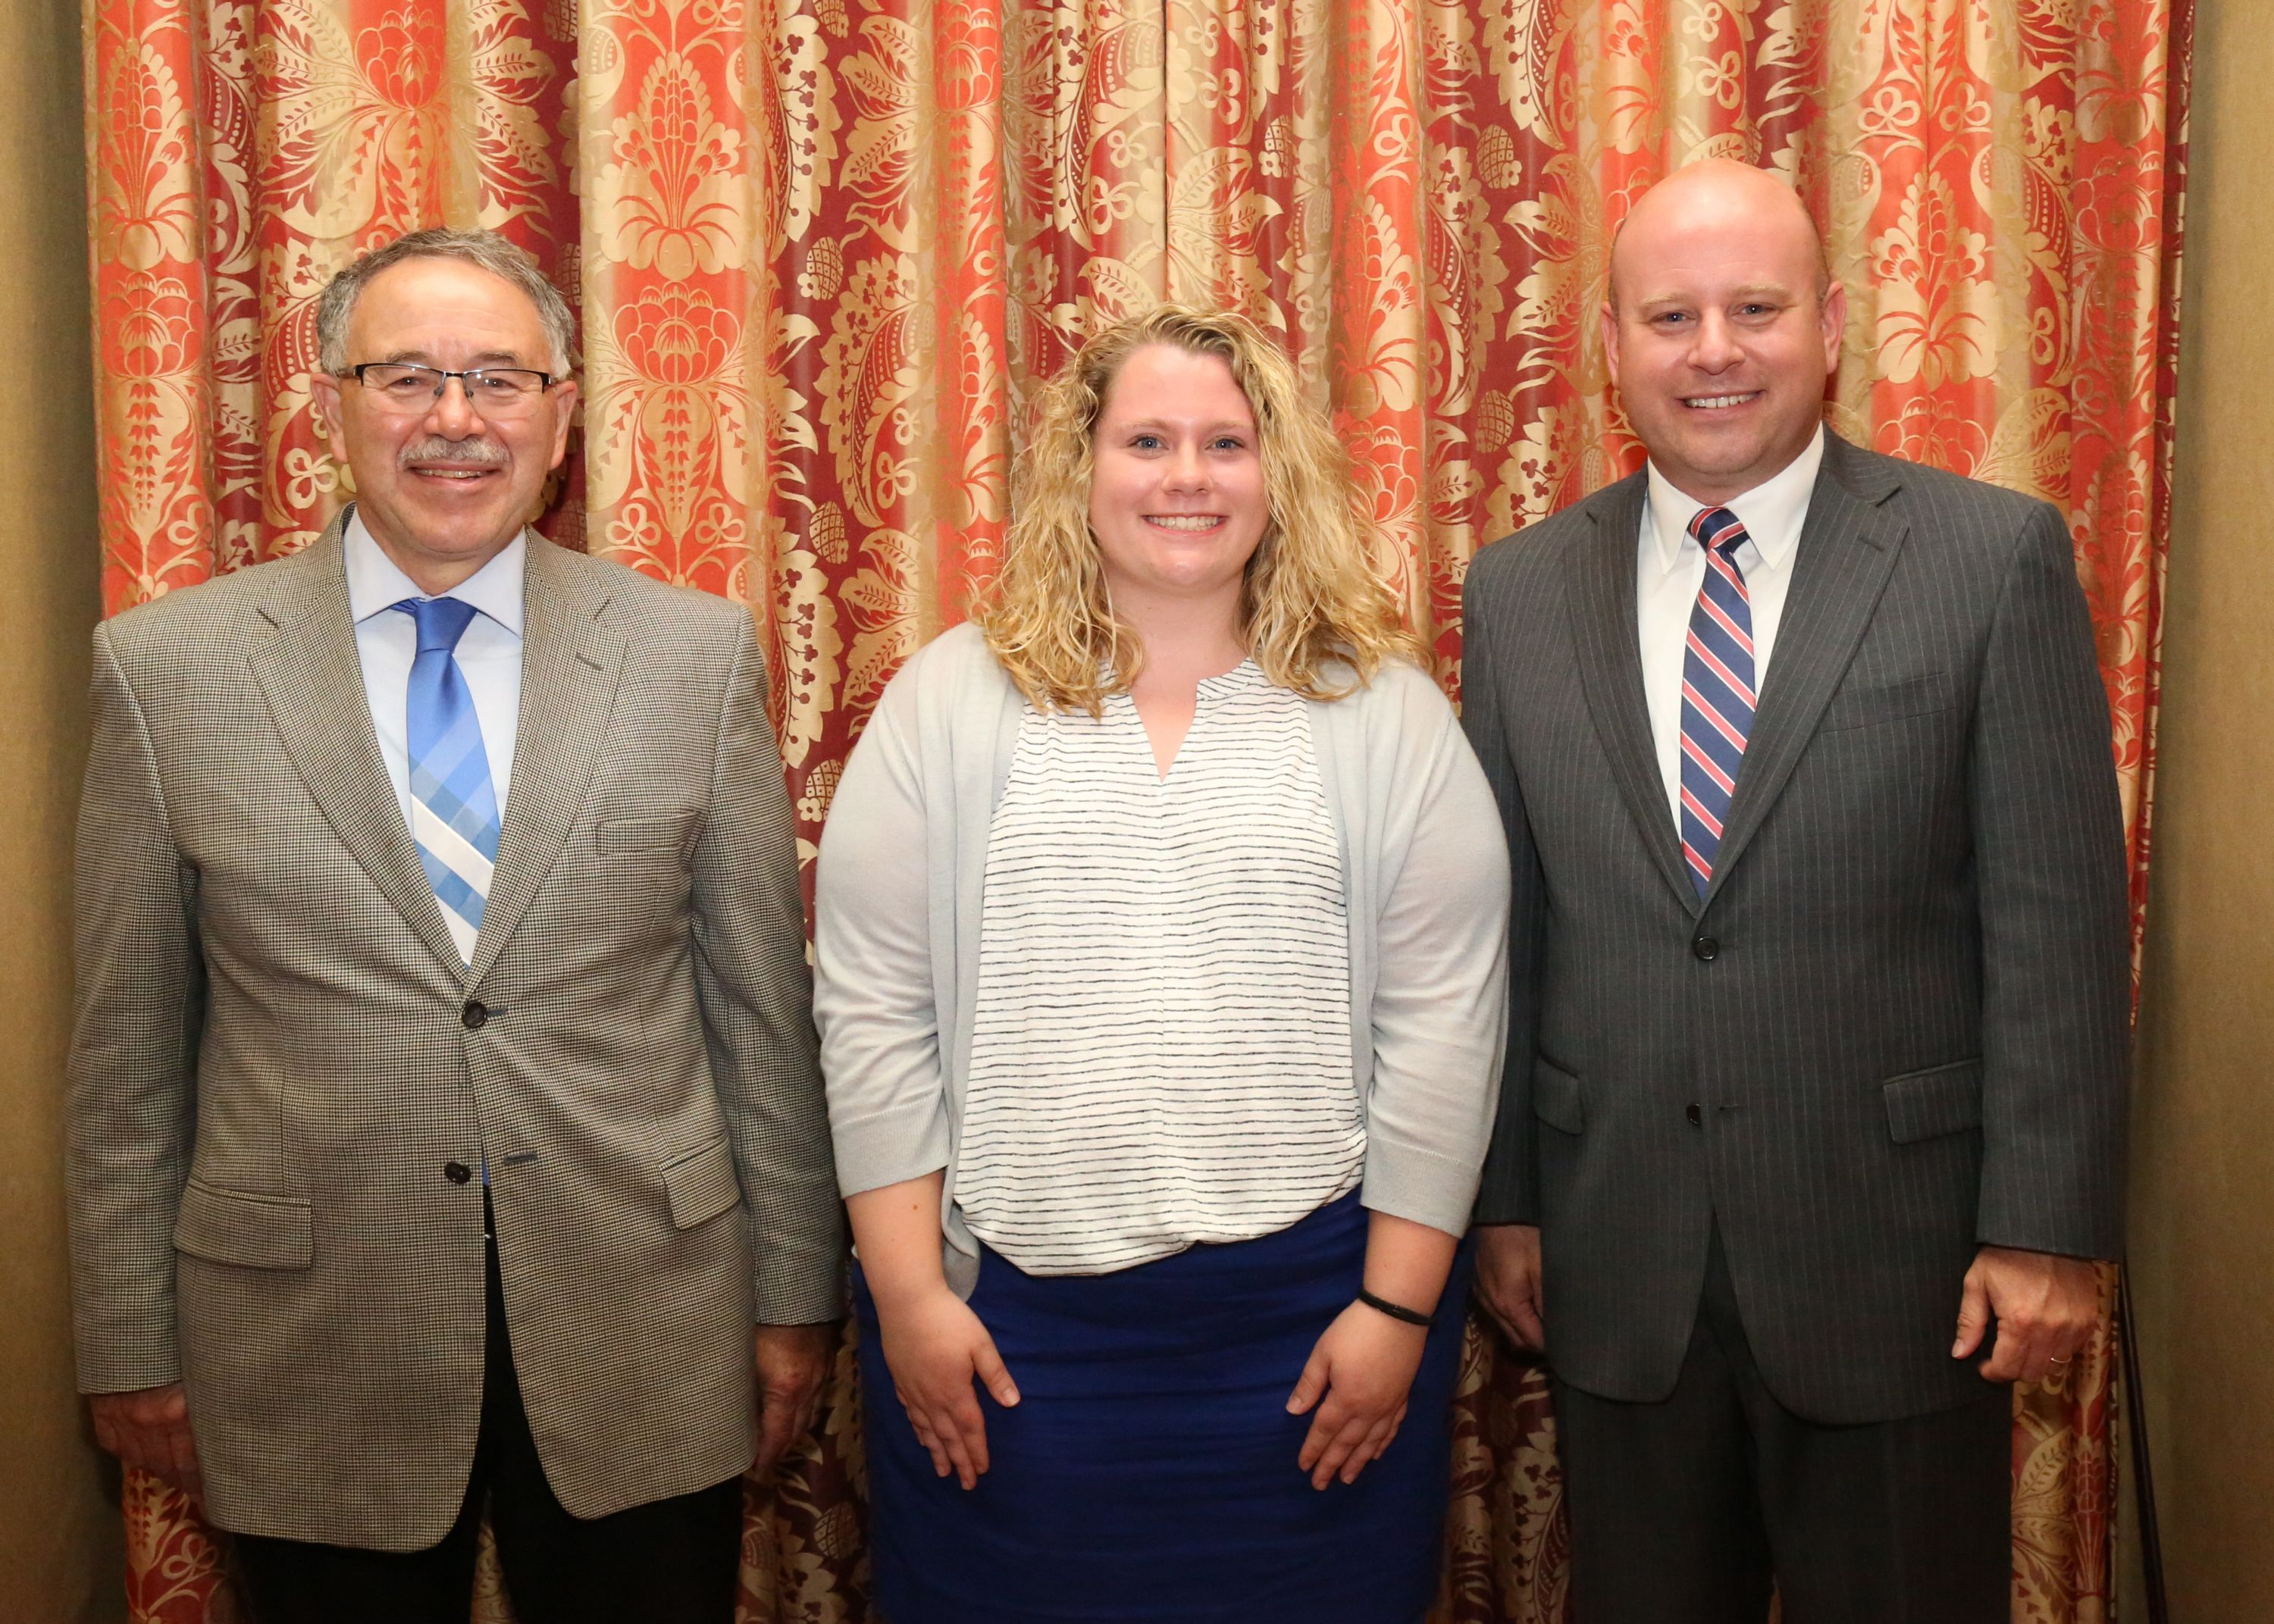 Katie French (center) is pictured with Dr. Larry Grabau, Associate Dean for the University of Kentucky College of Agriculture, Food & Environment (left) and Matthew Ingram, Assistant to the Executive Vice President and Director, Organization Division, Kentucky Farm Bureau (right), during the 2018 Institute for Future Agricultural Leaders (IFAL) at the University of Kentucky